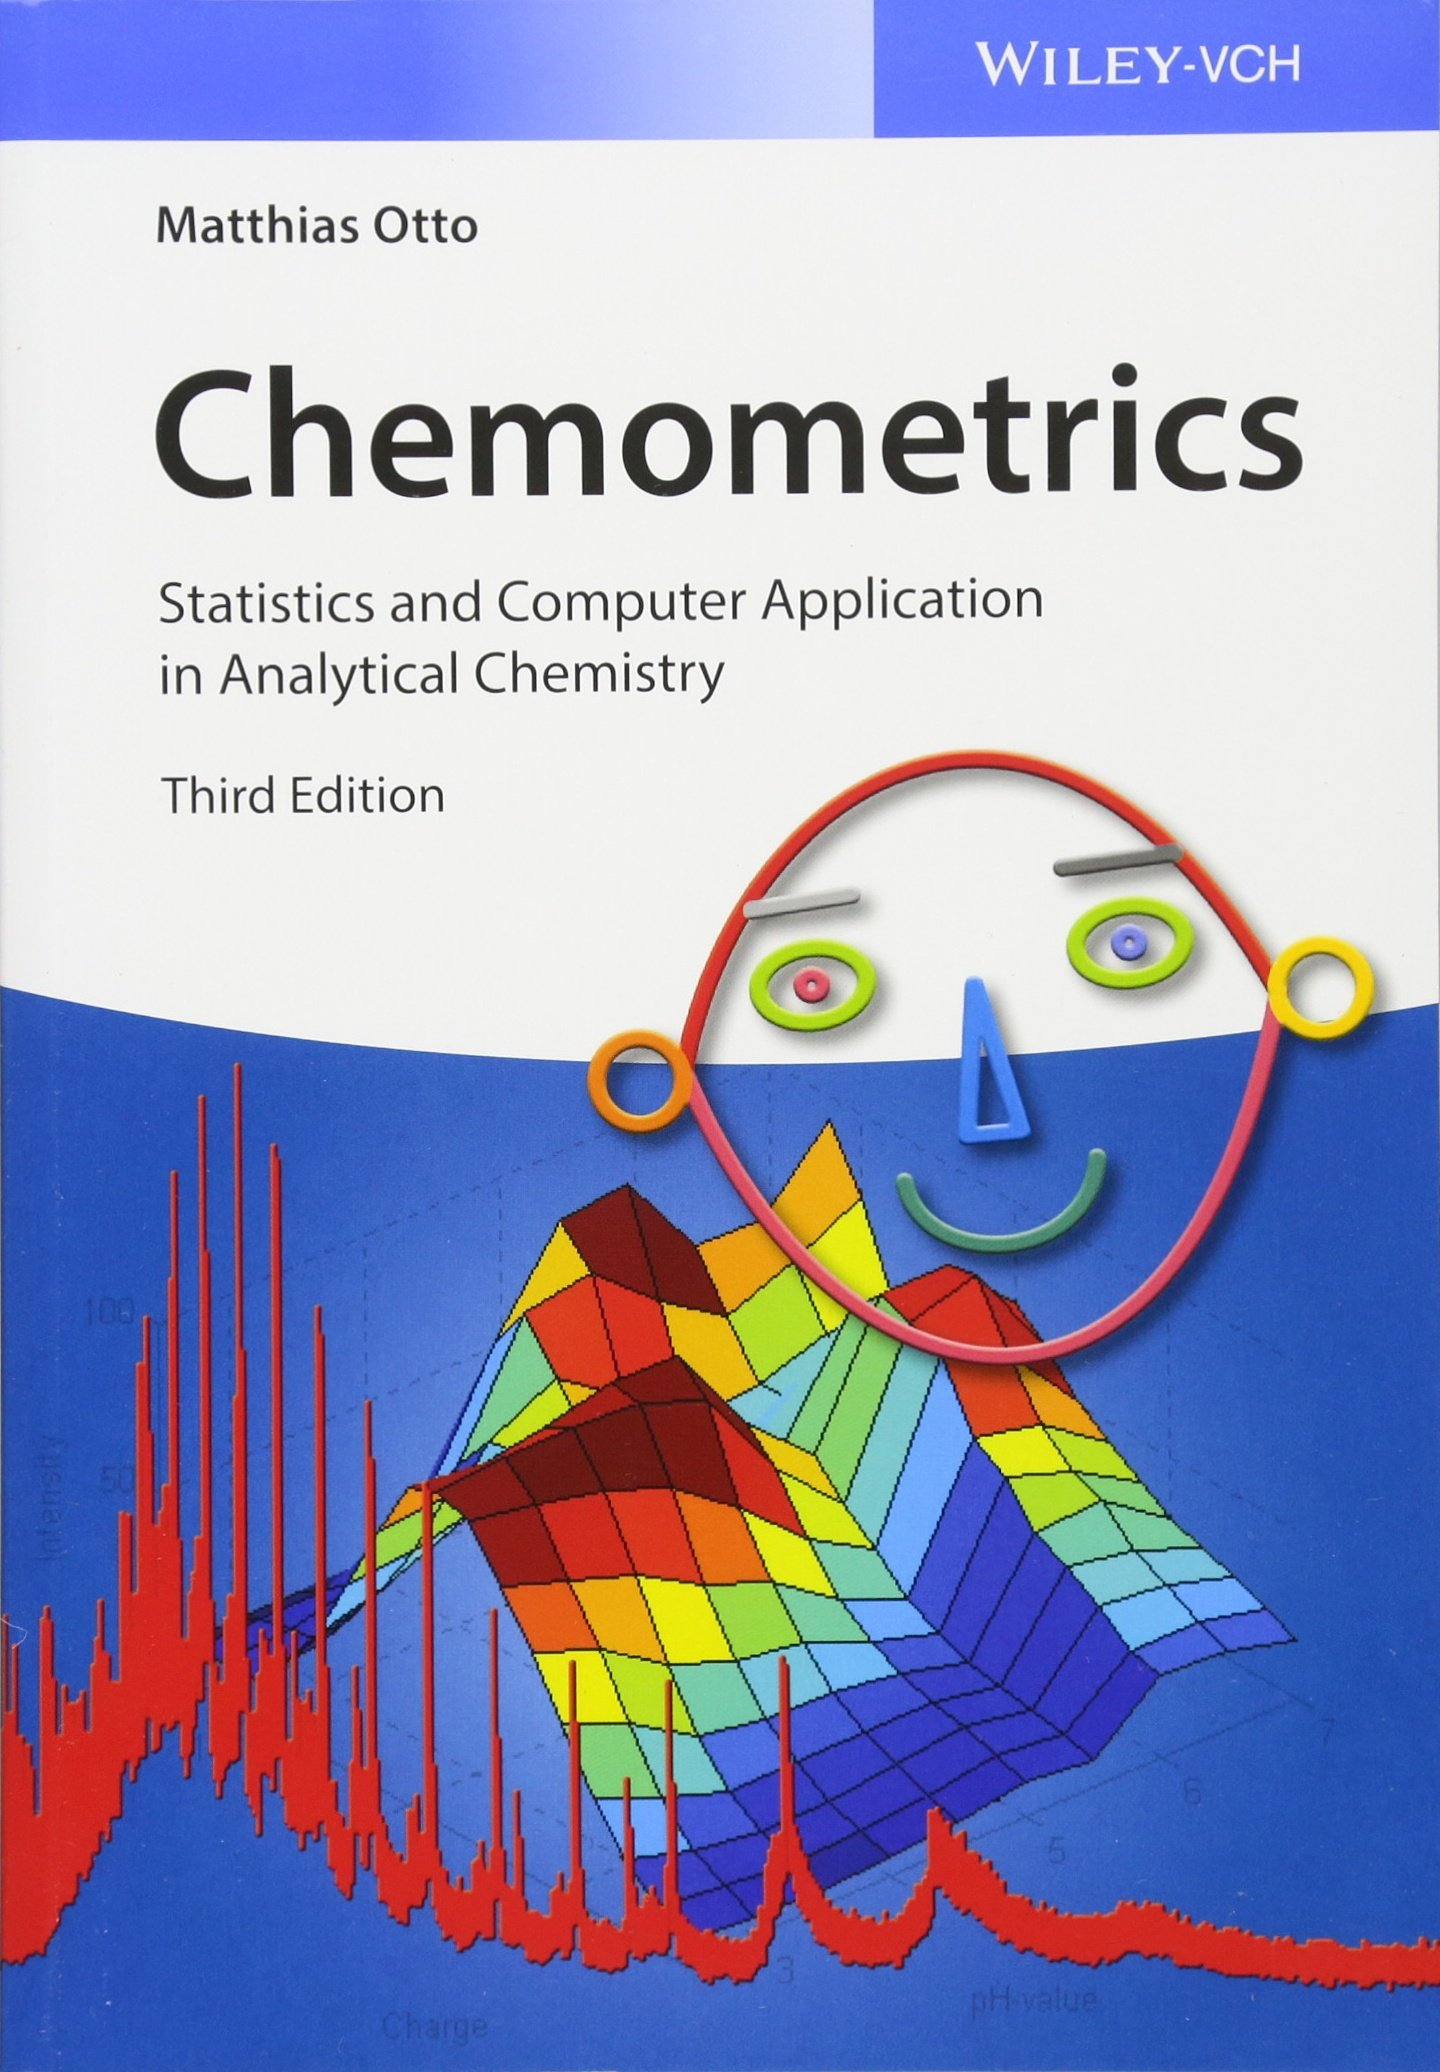 Image OfChemometrics: Statistics And Computer Application In Analytical Chemistry